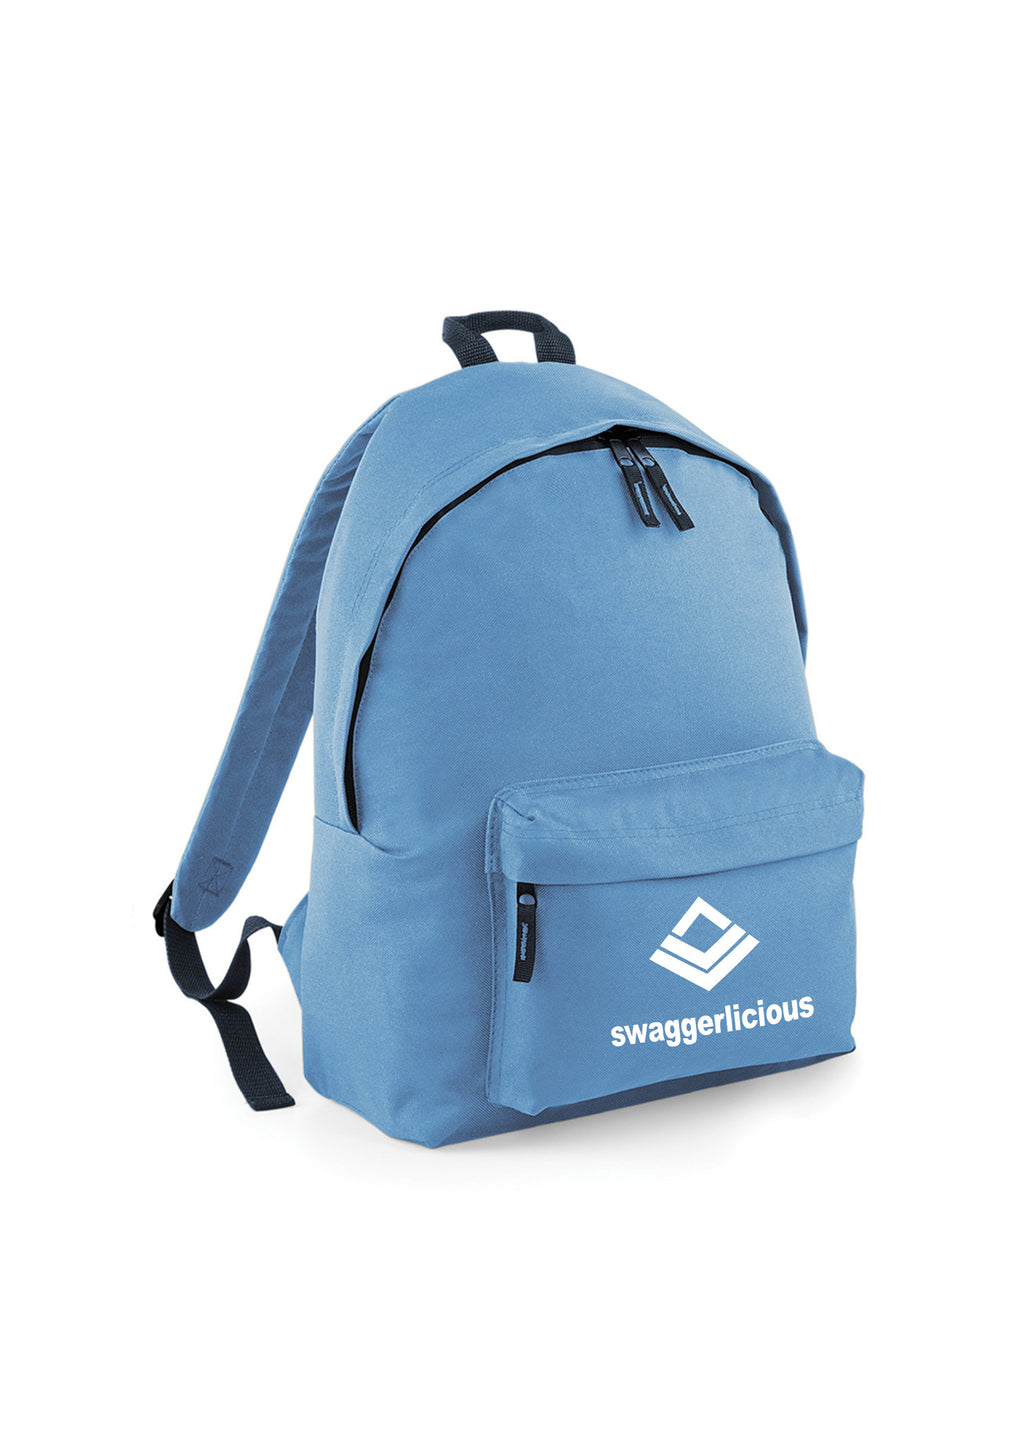 Swaggerlicious Blue Classic Backpack - swaggerlicious-clothing.com